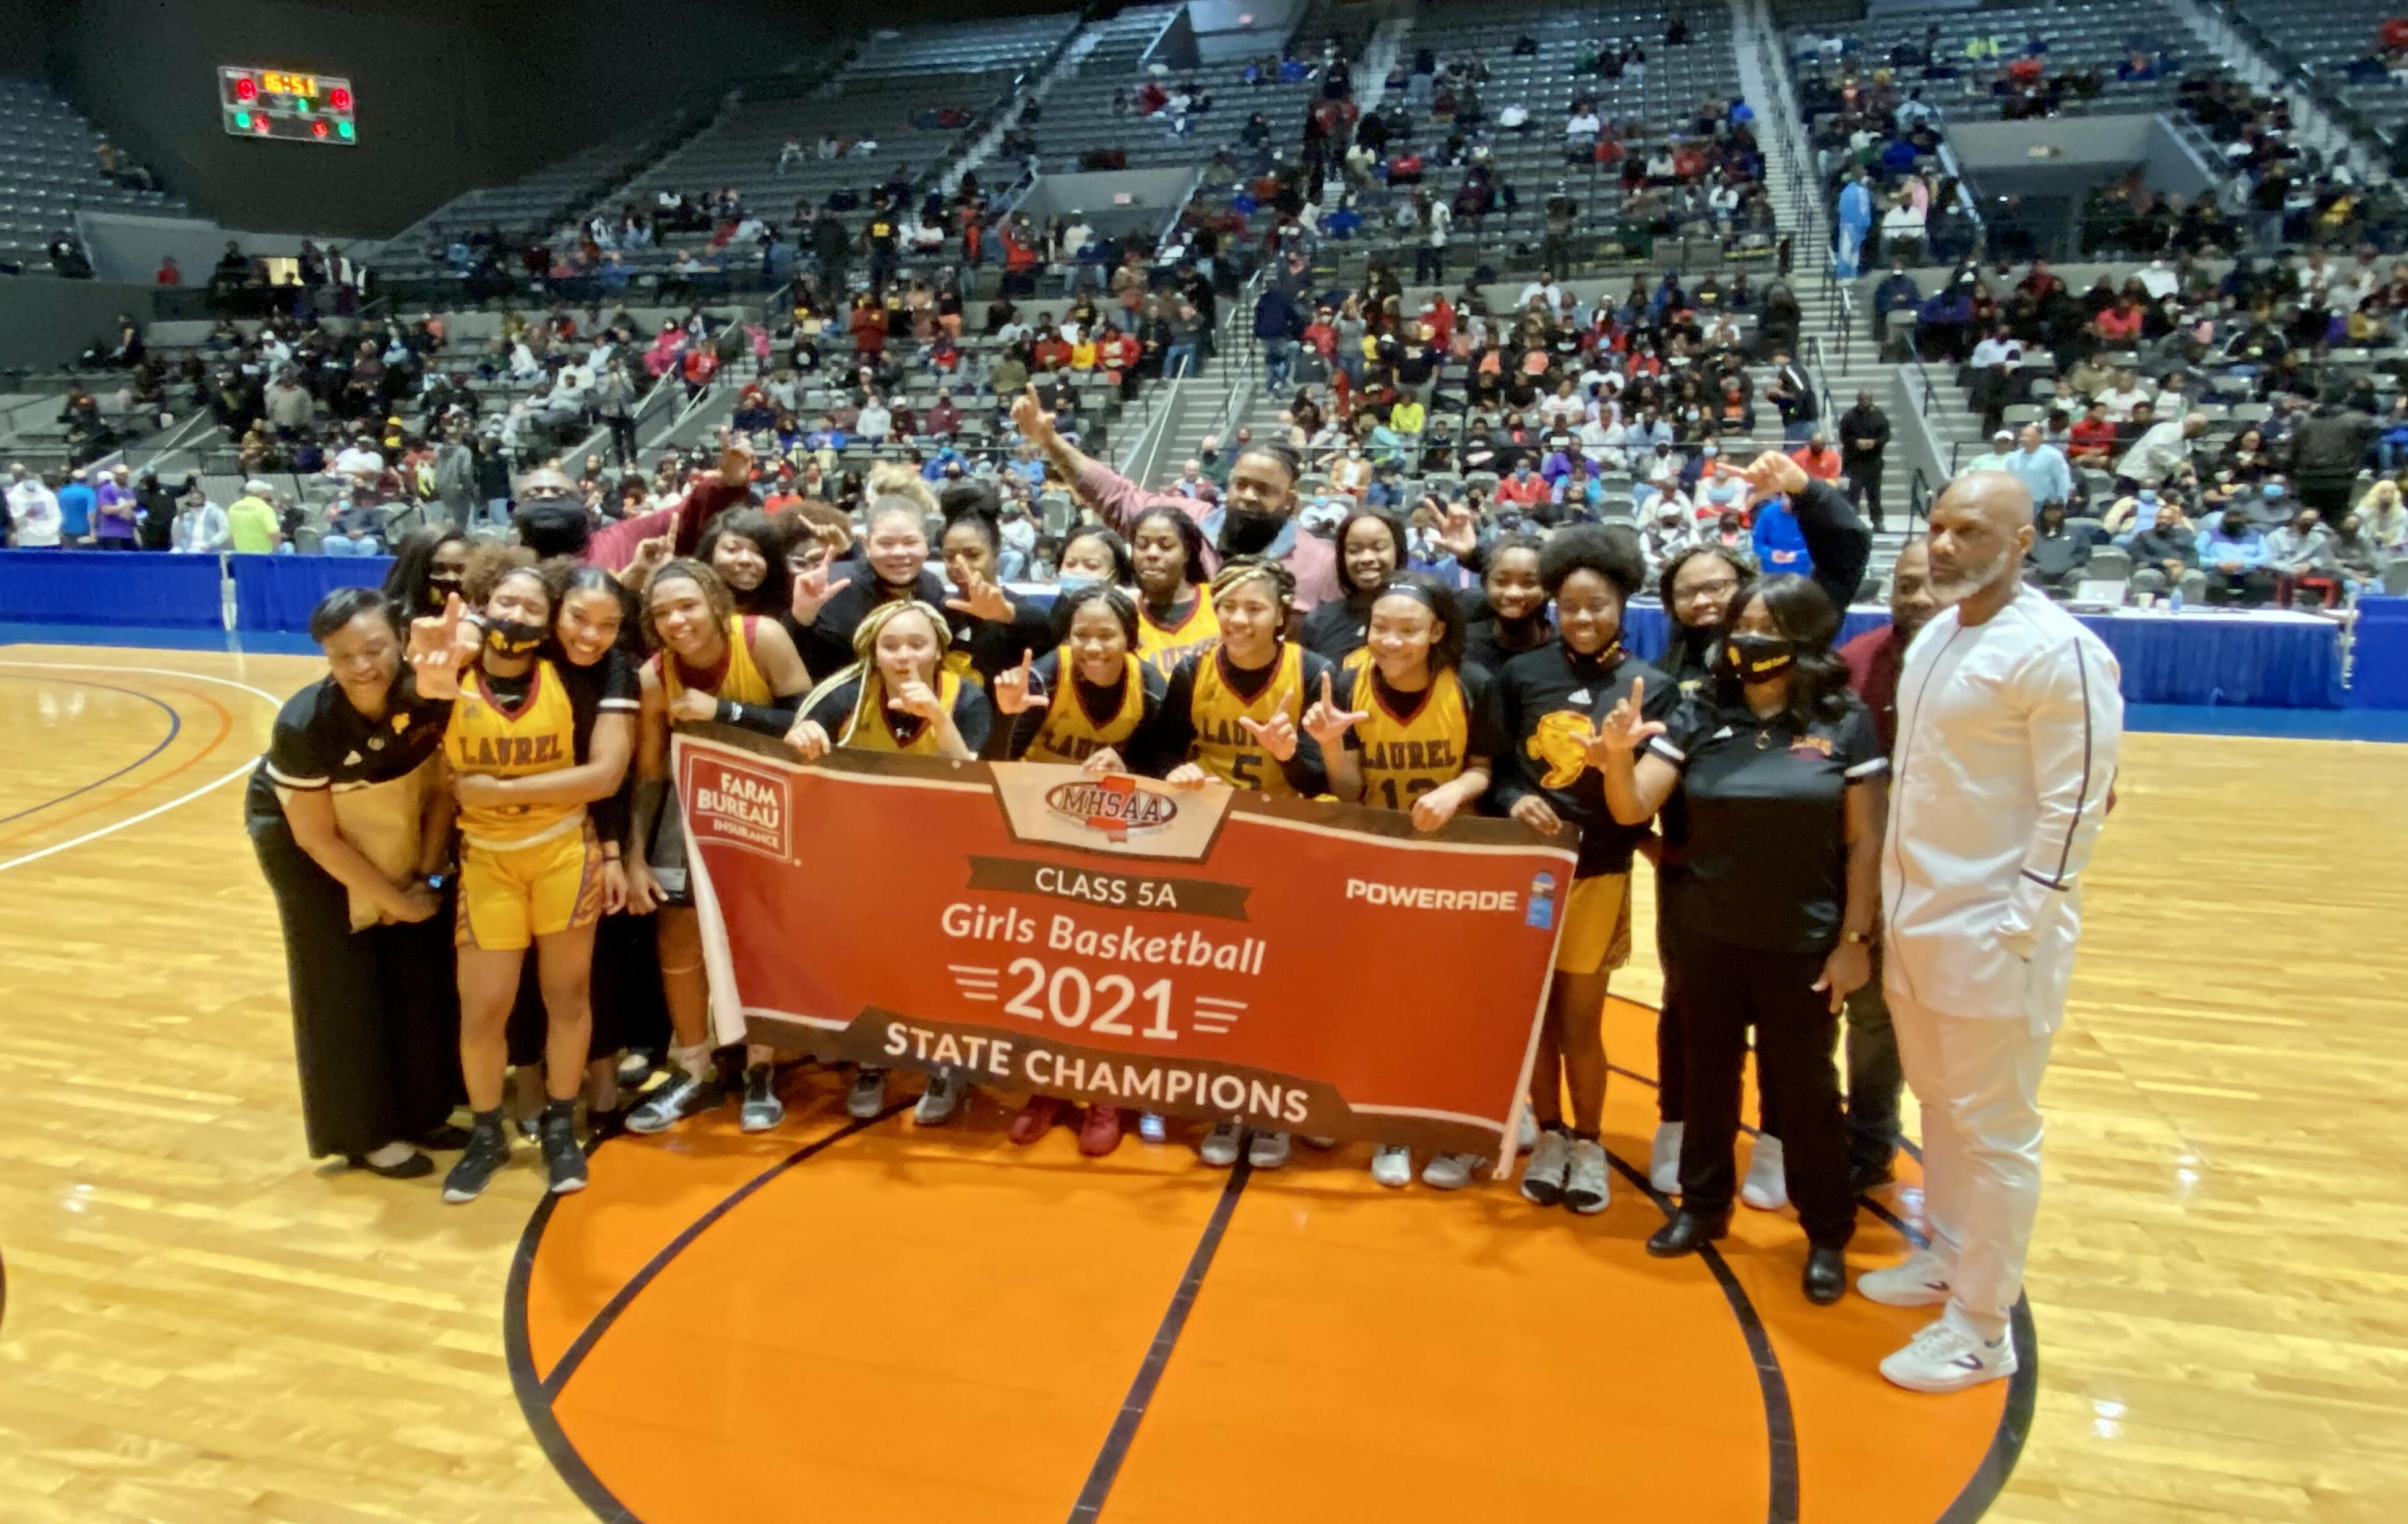 girls basketball team with championship banner